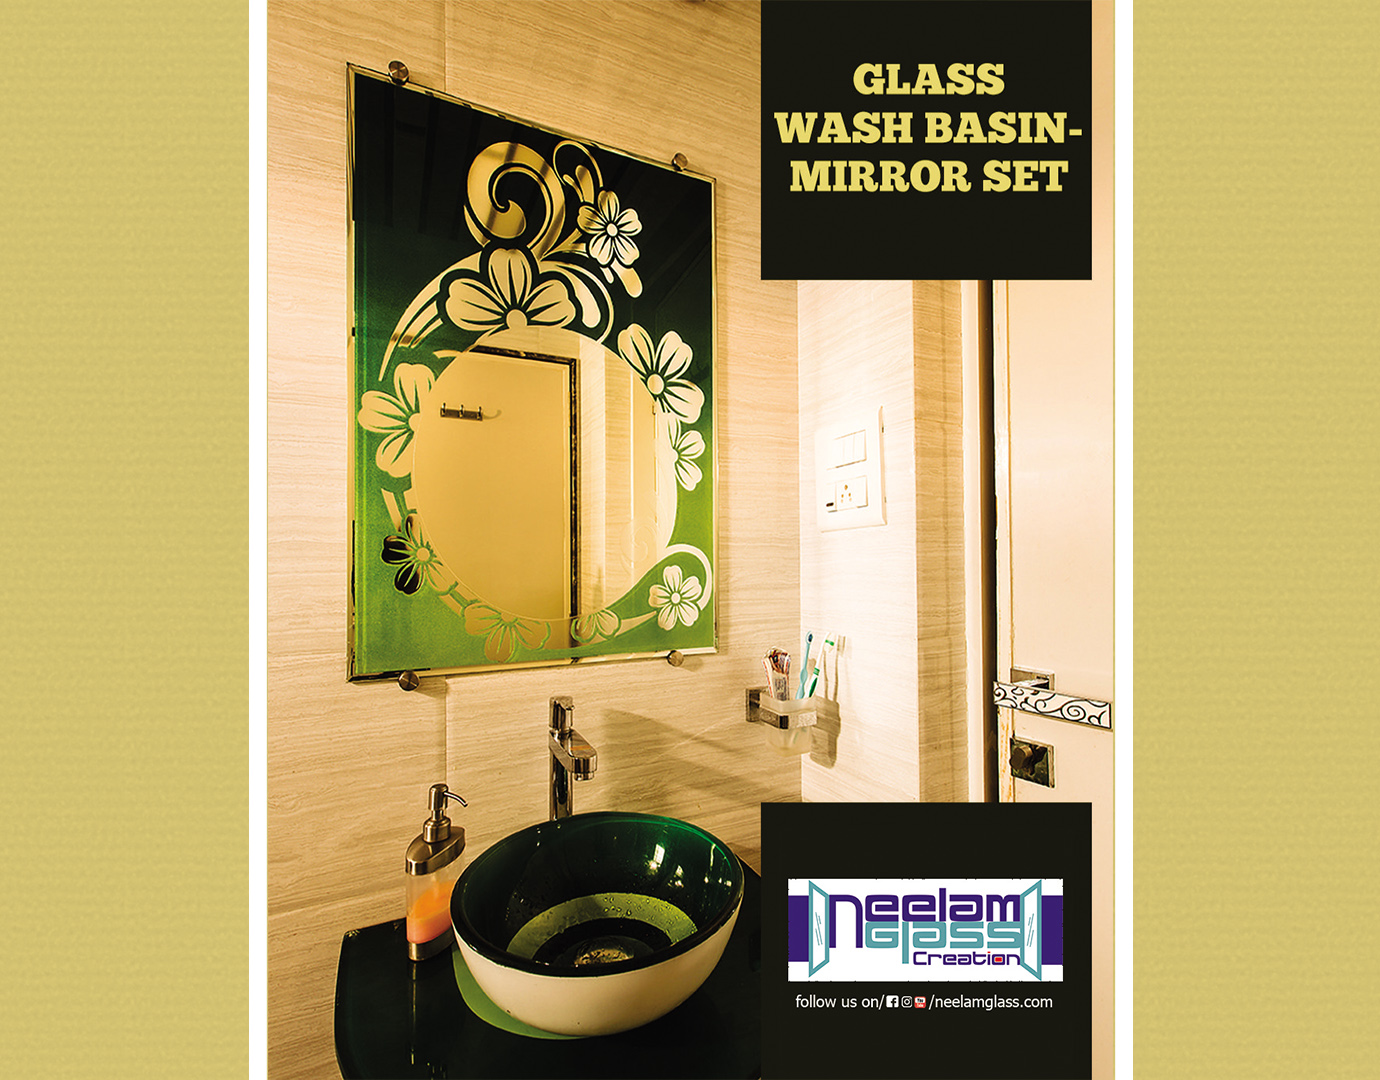 8.Glass wash basin- mirror set